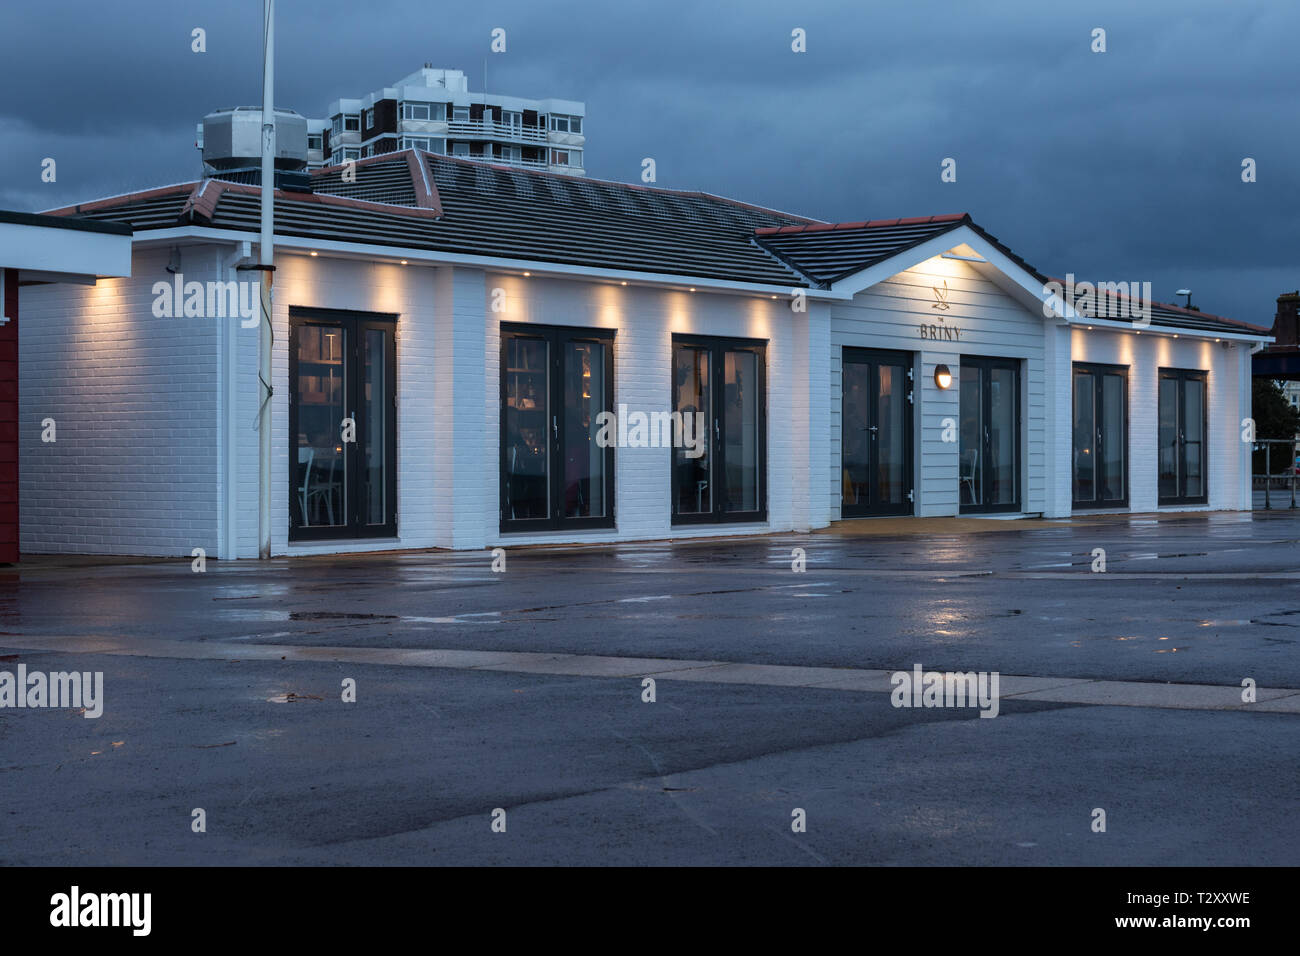 Briny restaurant Clarence esplanade Southsea in the early evening, Portsmouth, Hampshire Stock Photo